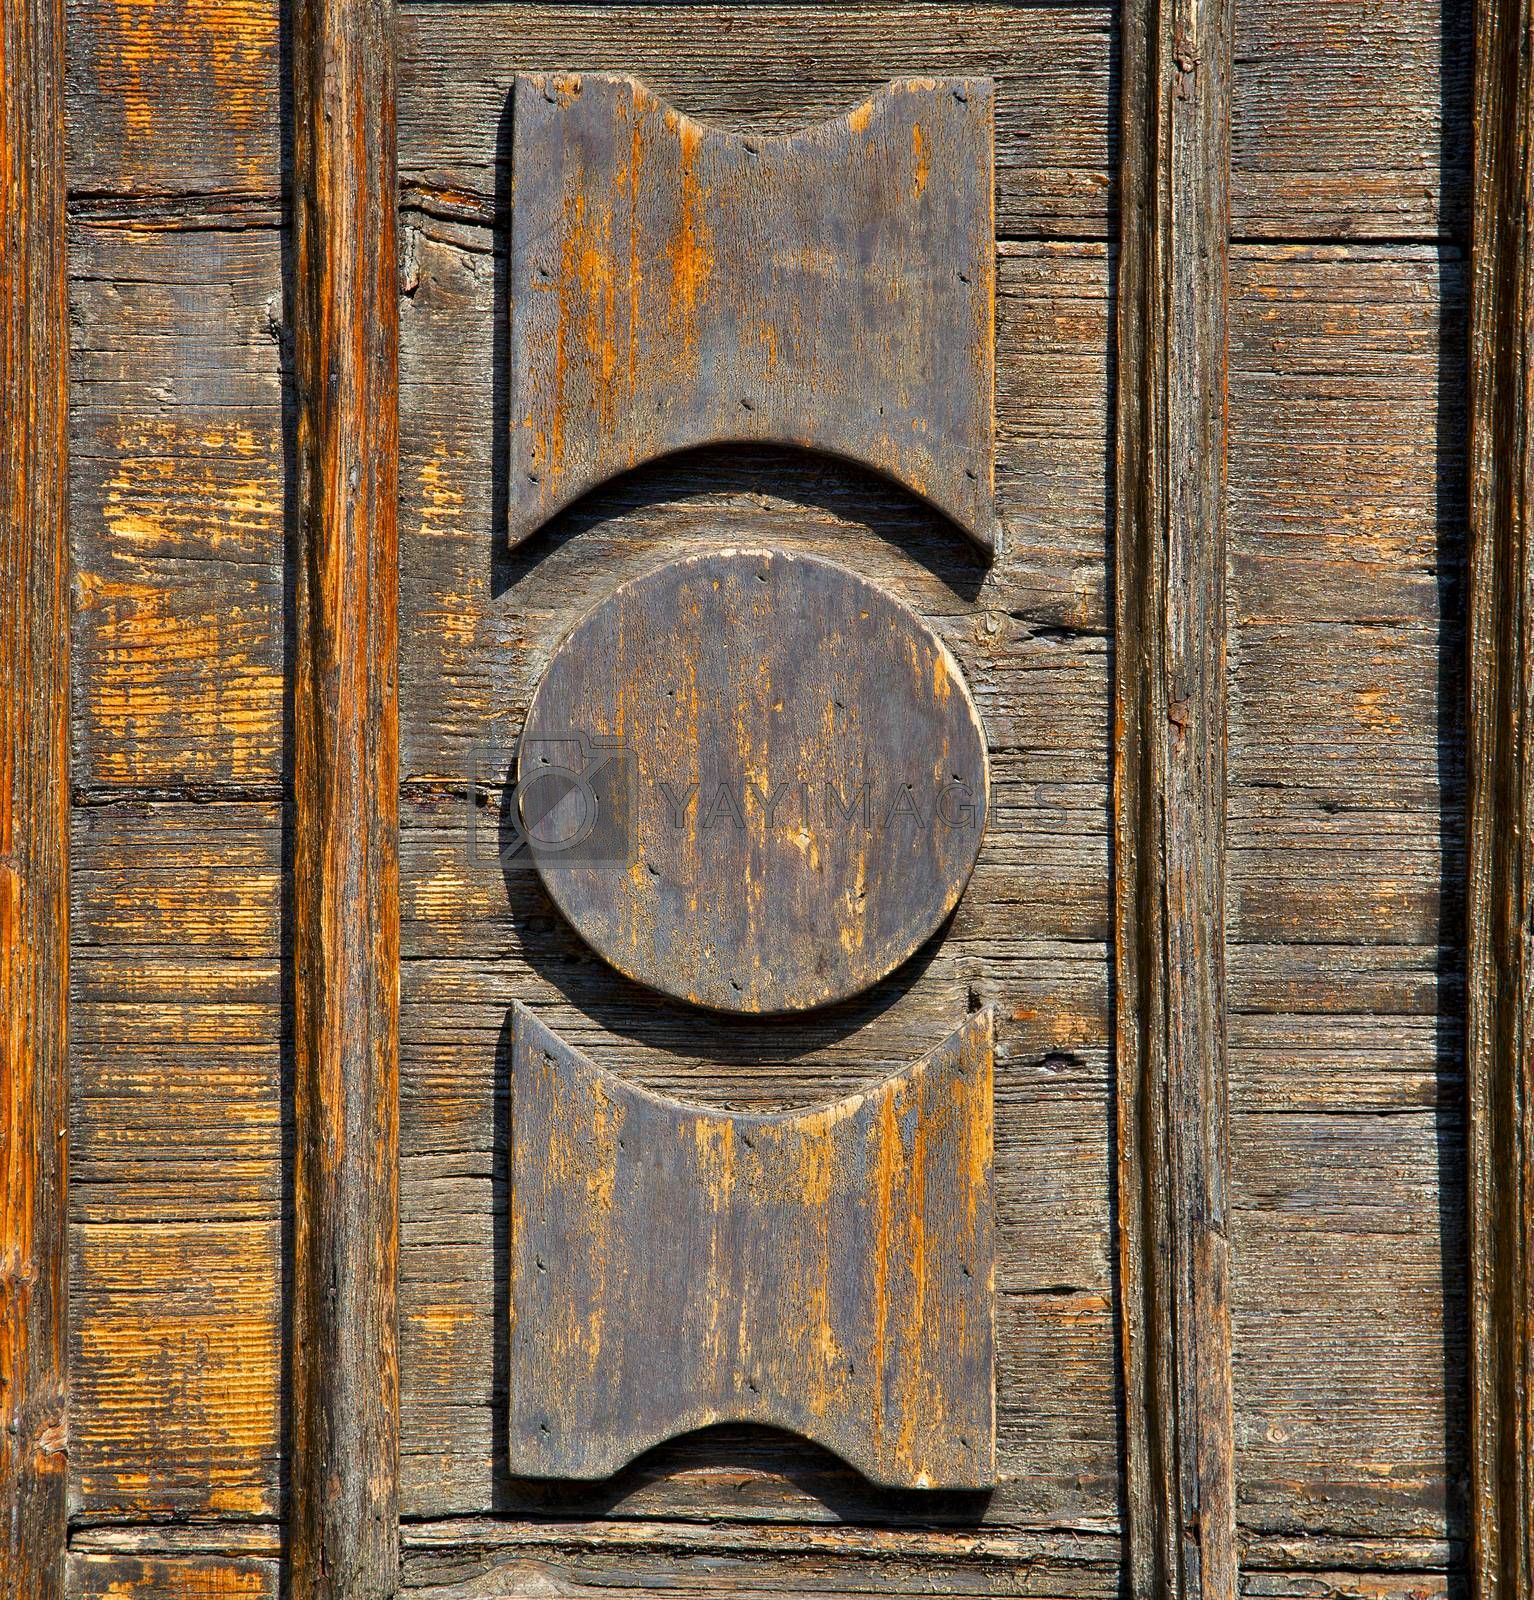 castronno  varese   brown knocker  door  closed wood lombardy it by lkpro